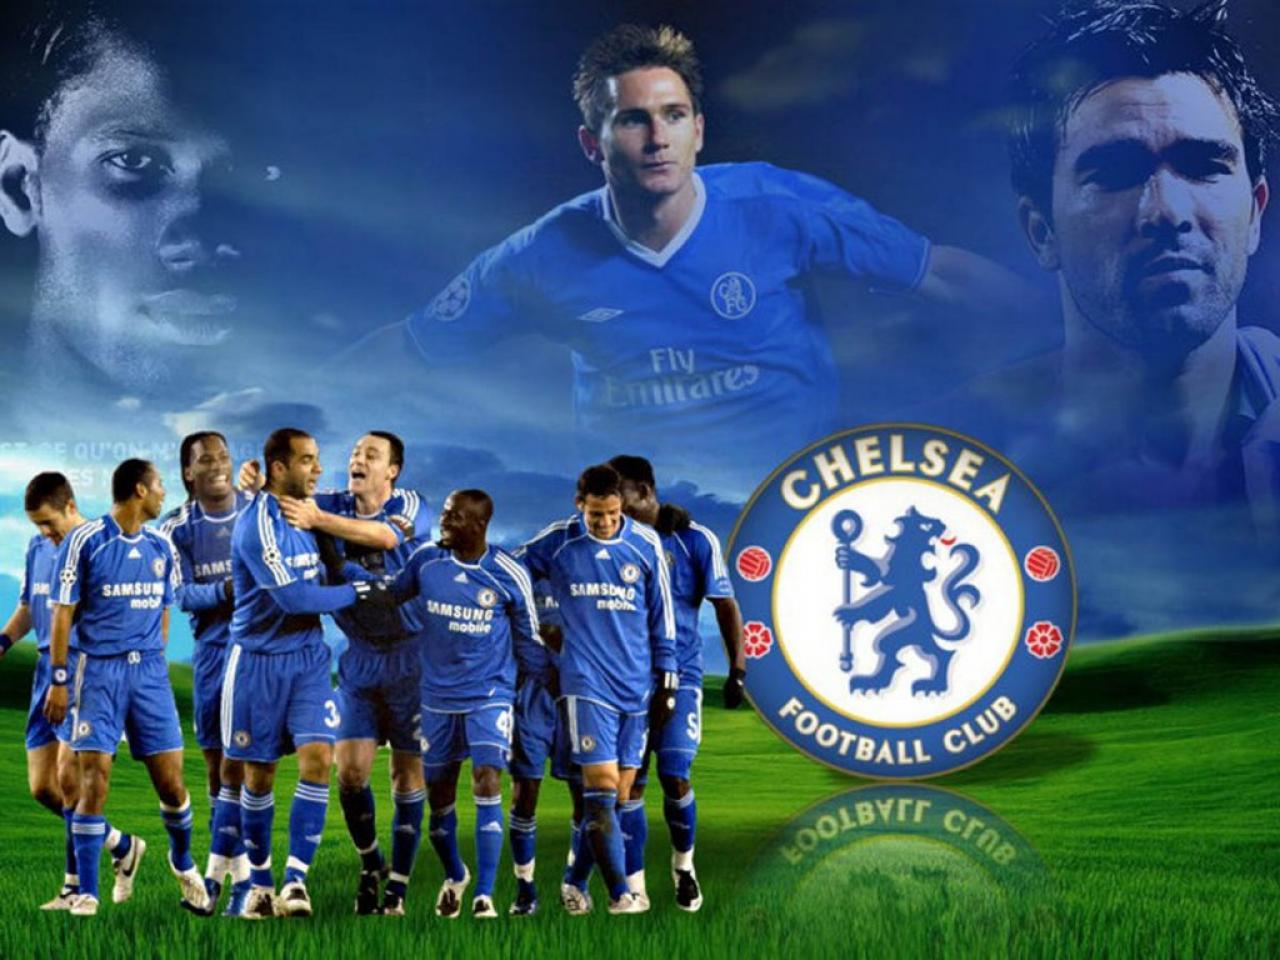 Gratis Download Wallpaper Chelsea Terbaru 2012 - 2013